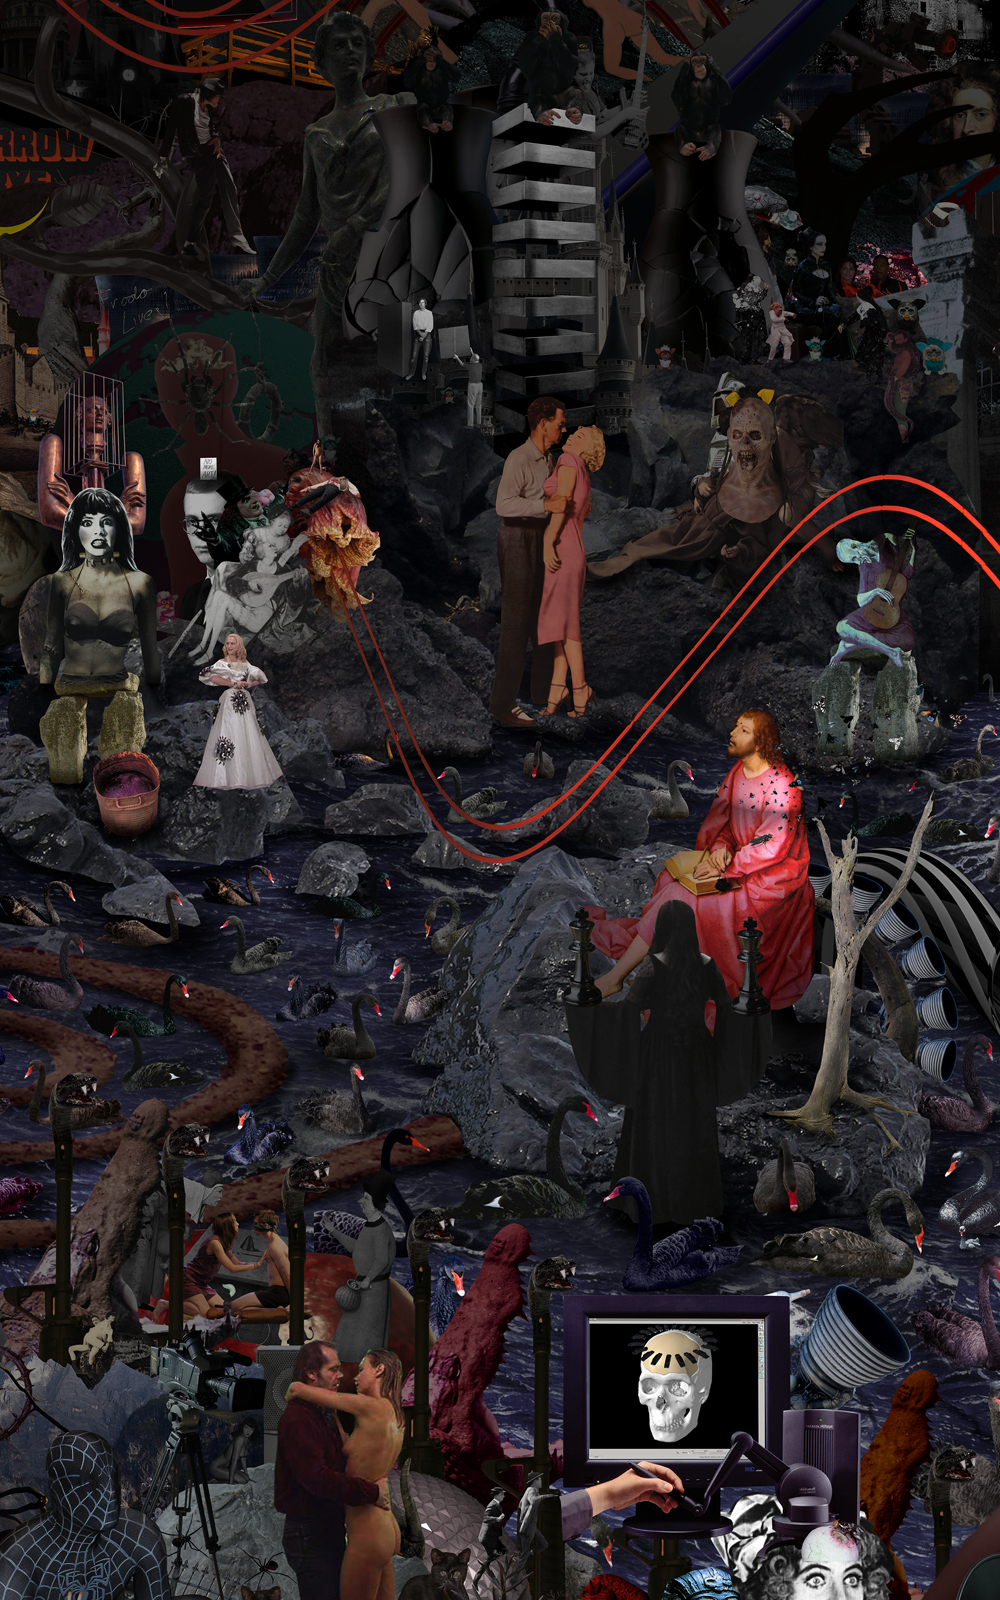 Case Simmons, Simmons & Burke, To Your Scattered Bodies Go #2, Hieronymus Bosch, Lightjet Print, Digital Collage, Digital Art, Photoshop Collage, Collage of Darkness, Horror Collage, Case Simmons Art, Case Simmons Artist, Collage Fine Art